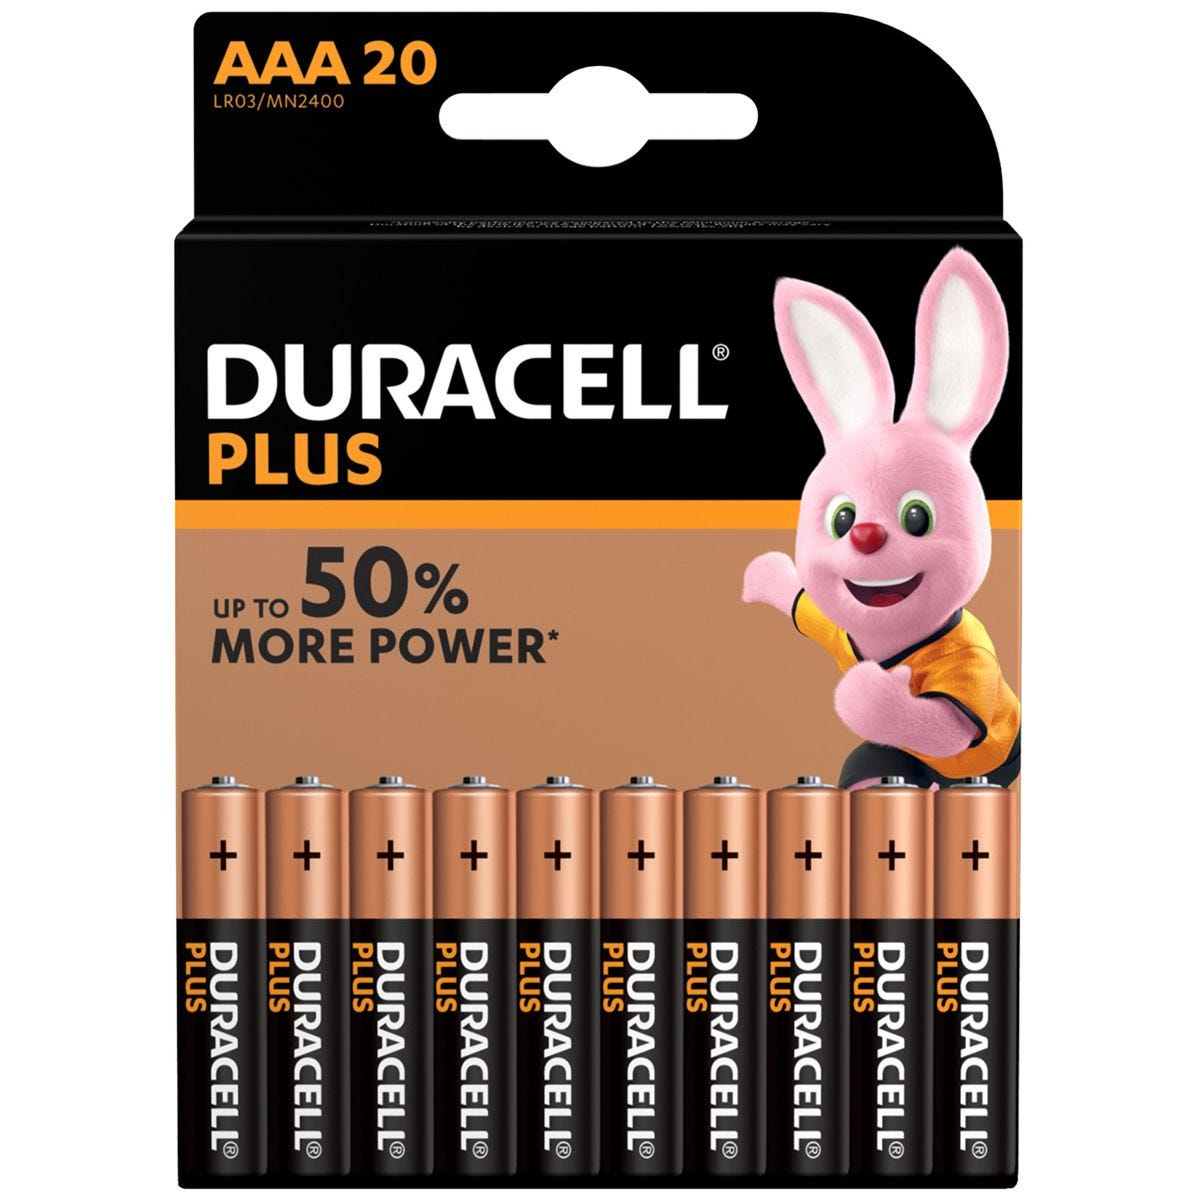 Duracell Plus Power AAA Batteries - 20 Pack